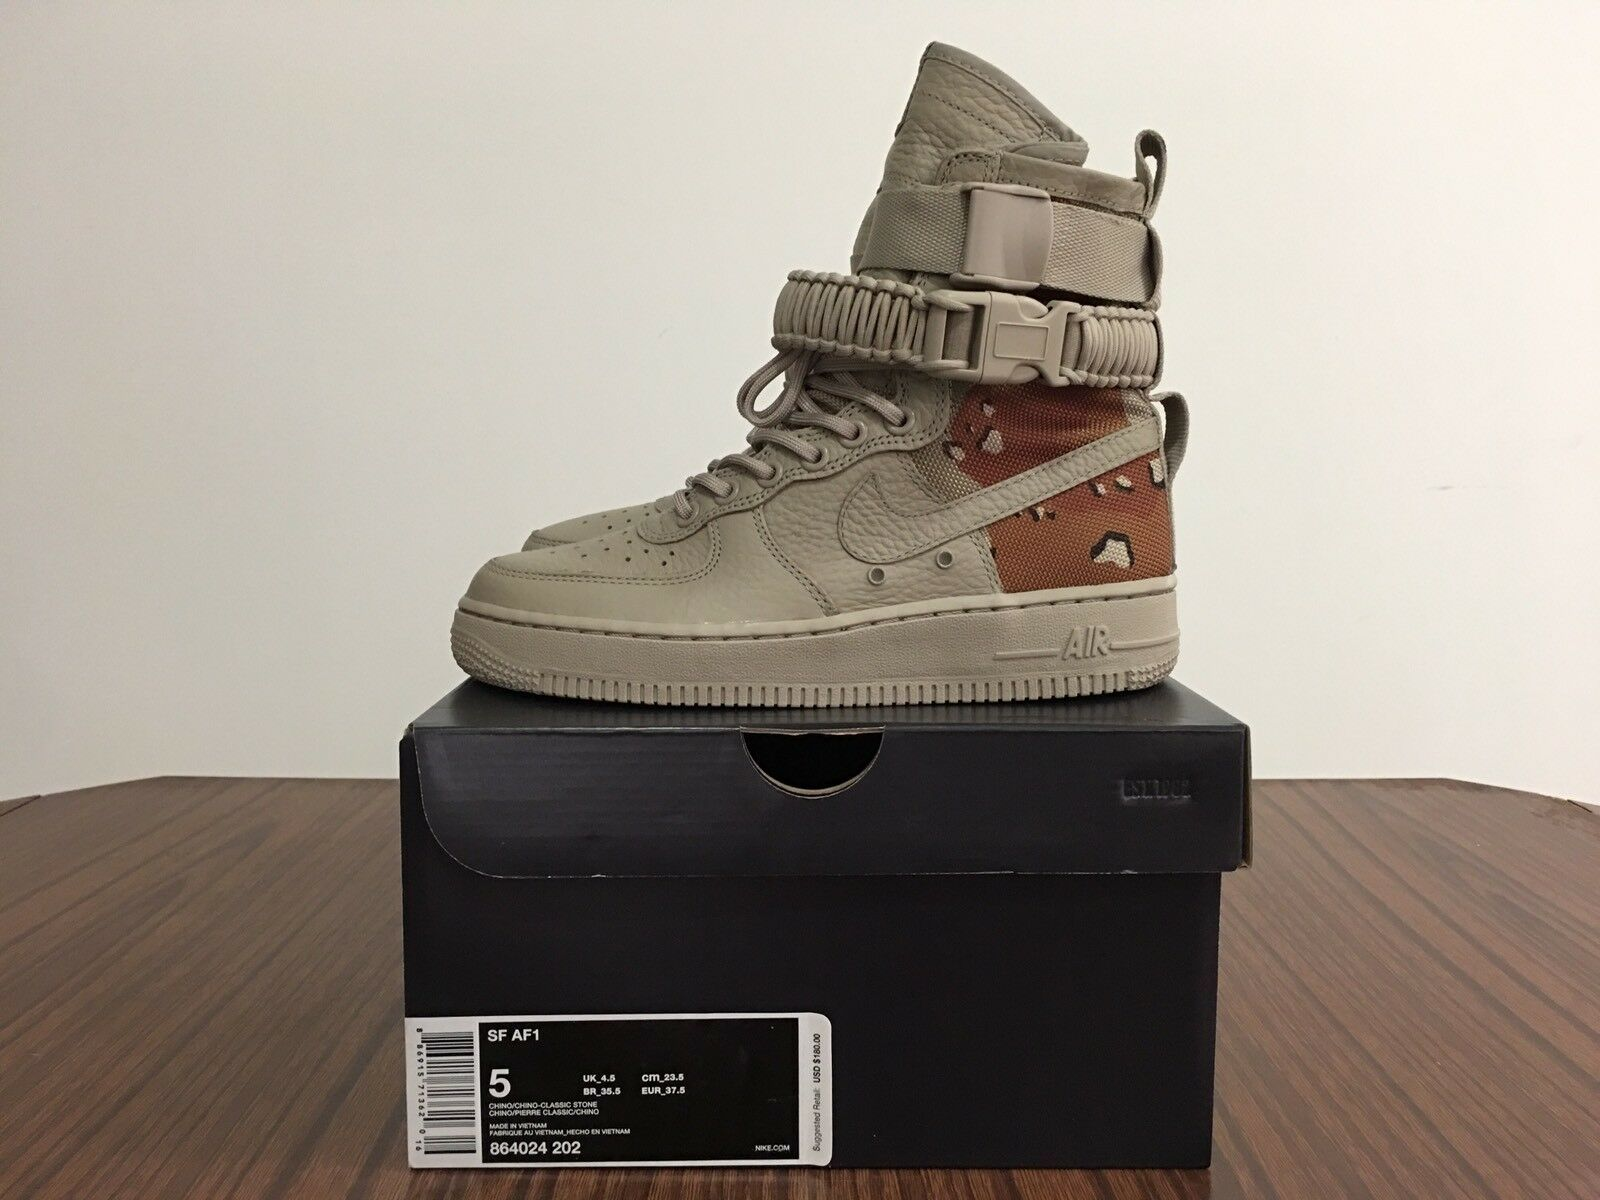 Nuove nike air force one 1 af1 speciale campo deserto mimetico chino - 864024202 sf